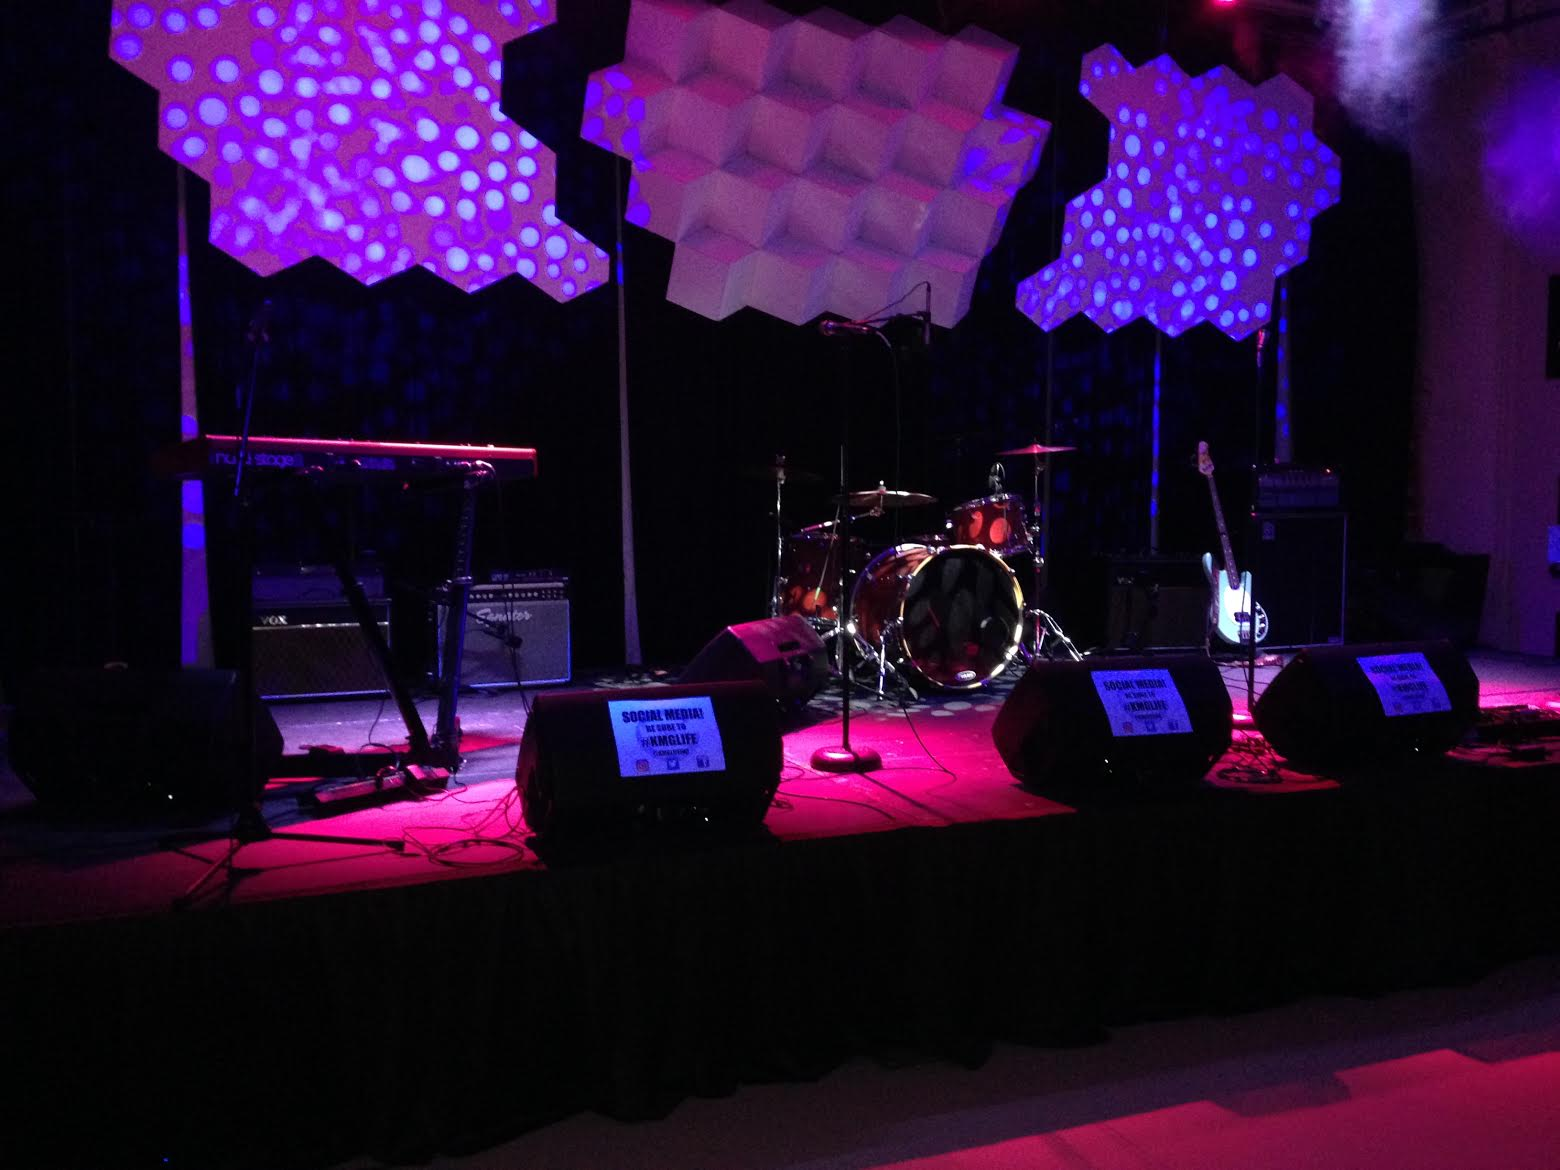 The showcase stage at KMG. Photo per the author.